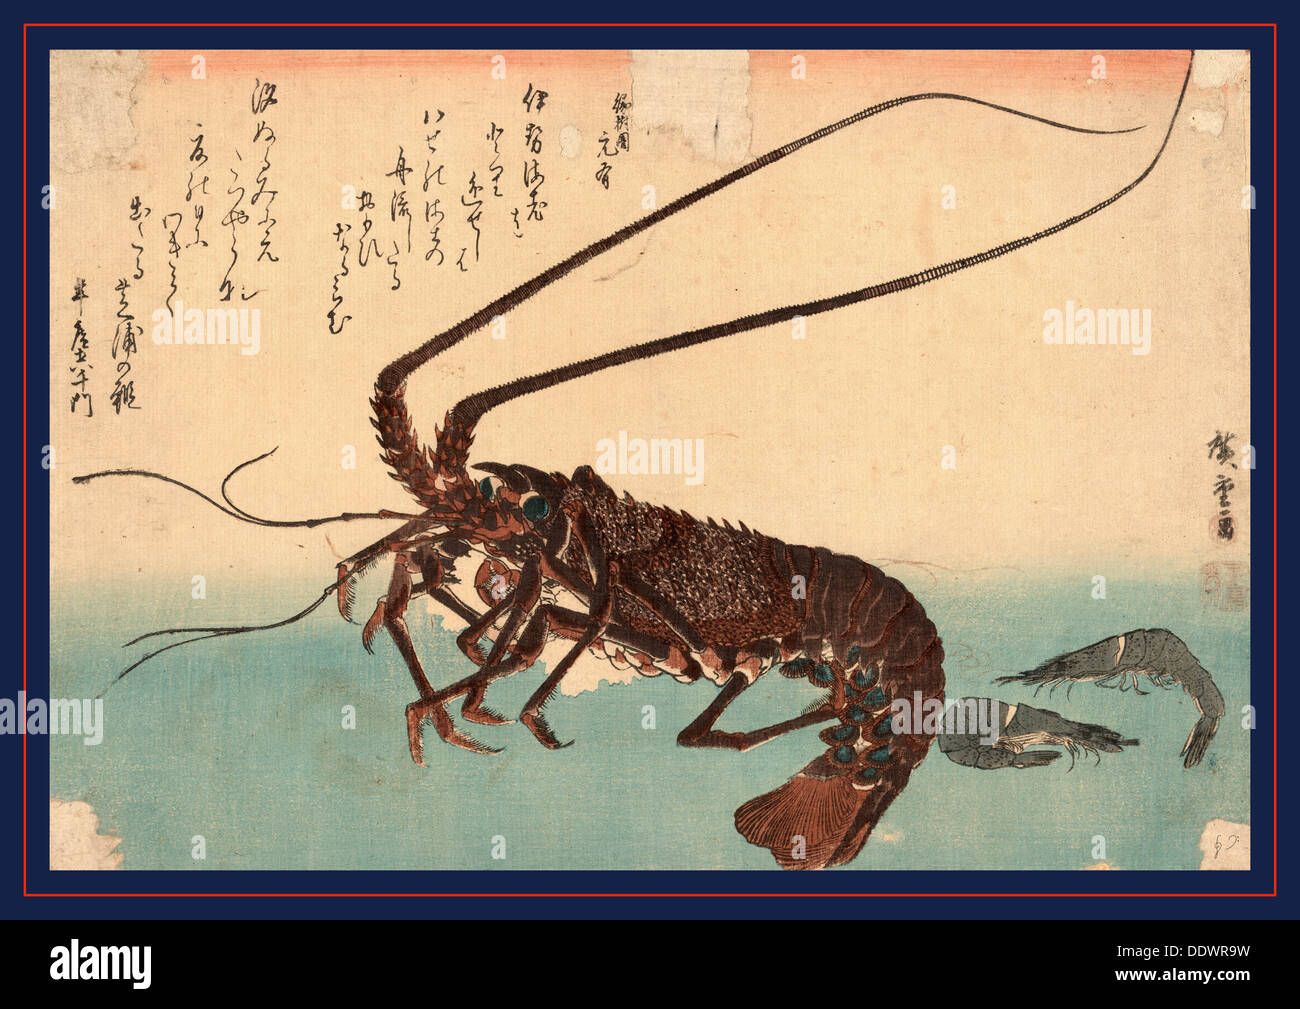 Ise ebi to shiba ebi, Shrimp and lobster. [between 1835 and 1844], 1 print : woodcut, color ; 25.3 x 37 - Stock Image